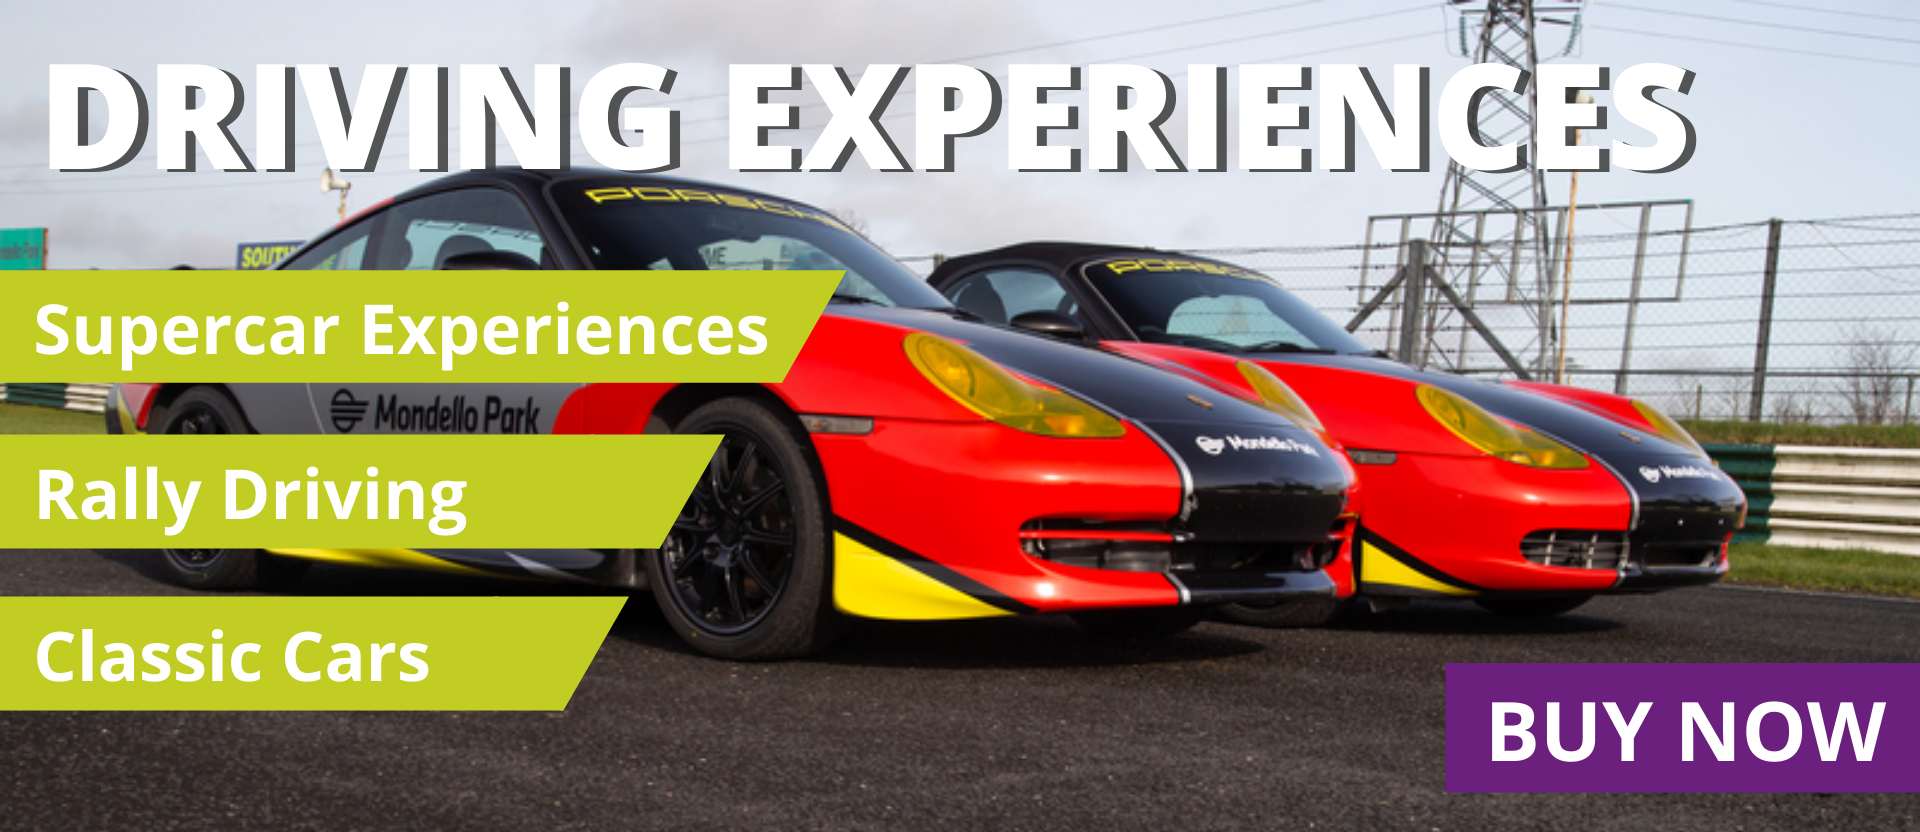 Driving Experiences